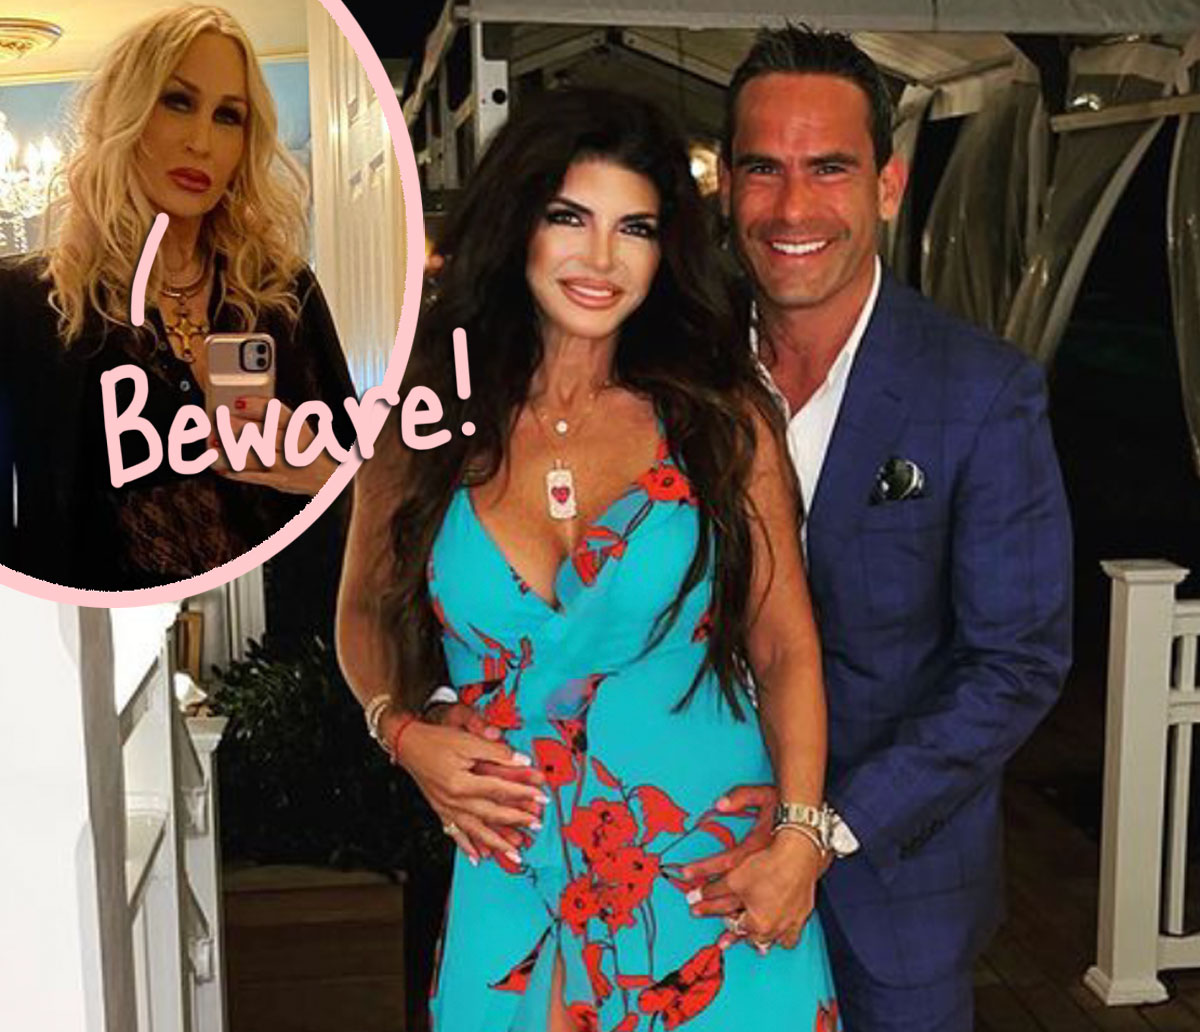 Former RHONJ Star Spills A LOT Of Shocking Tea About Teresa Giudice's New Boyfriend! Whoa!